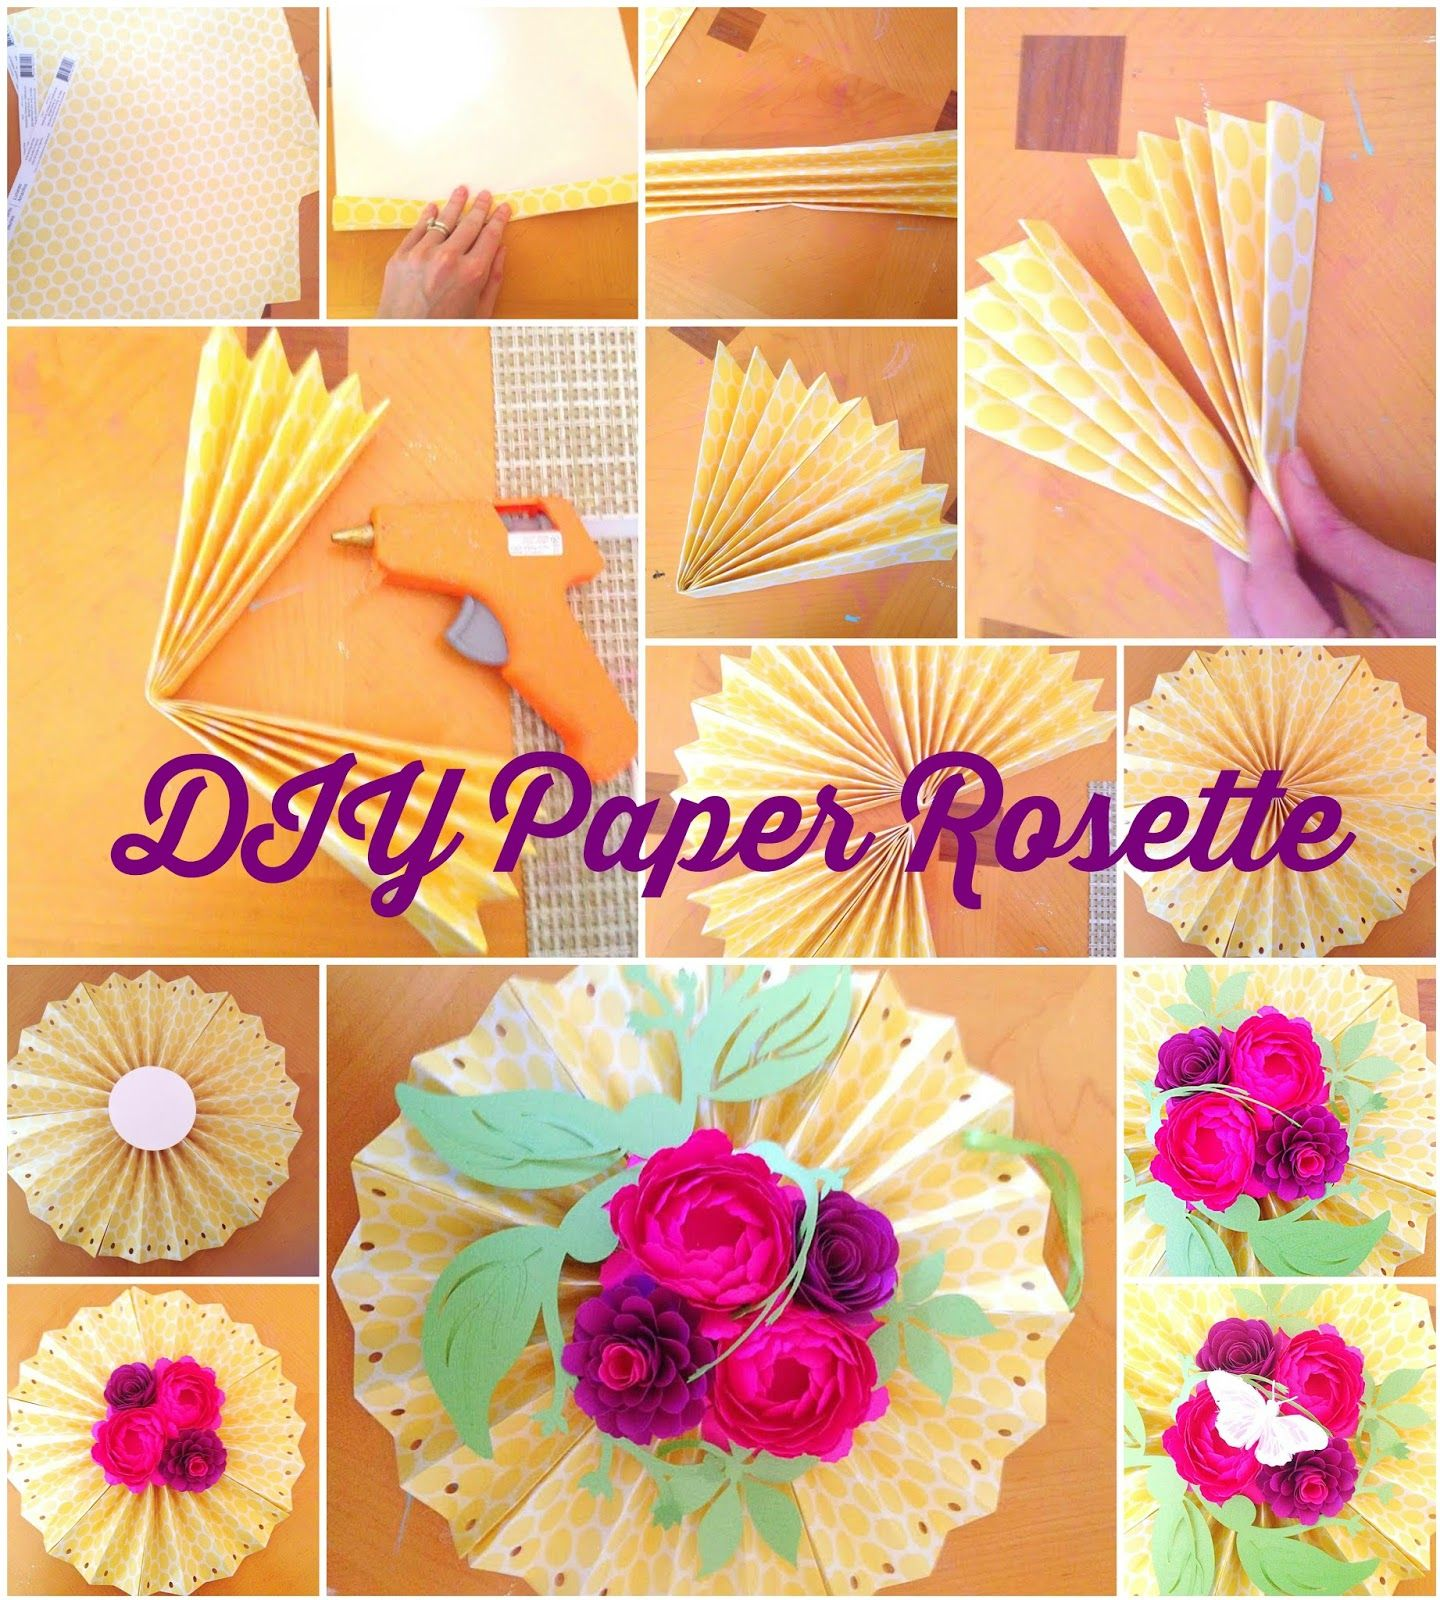 Decorative Hanging Paper Rosette Fans With Paper Flowers By Mamas